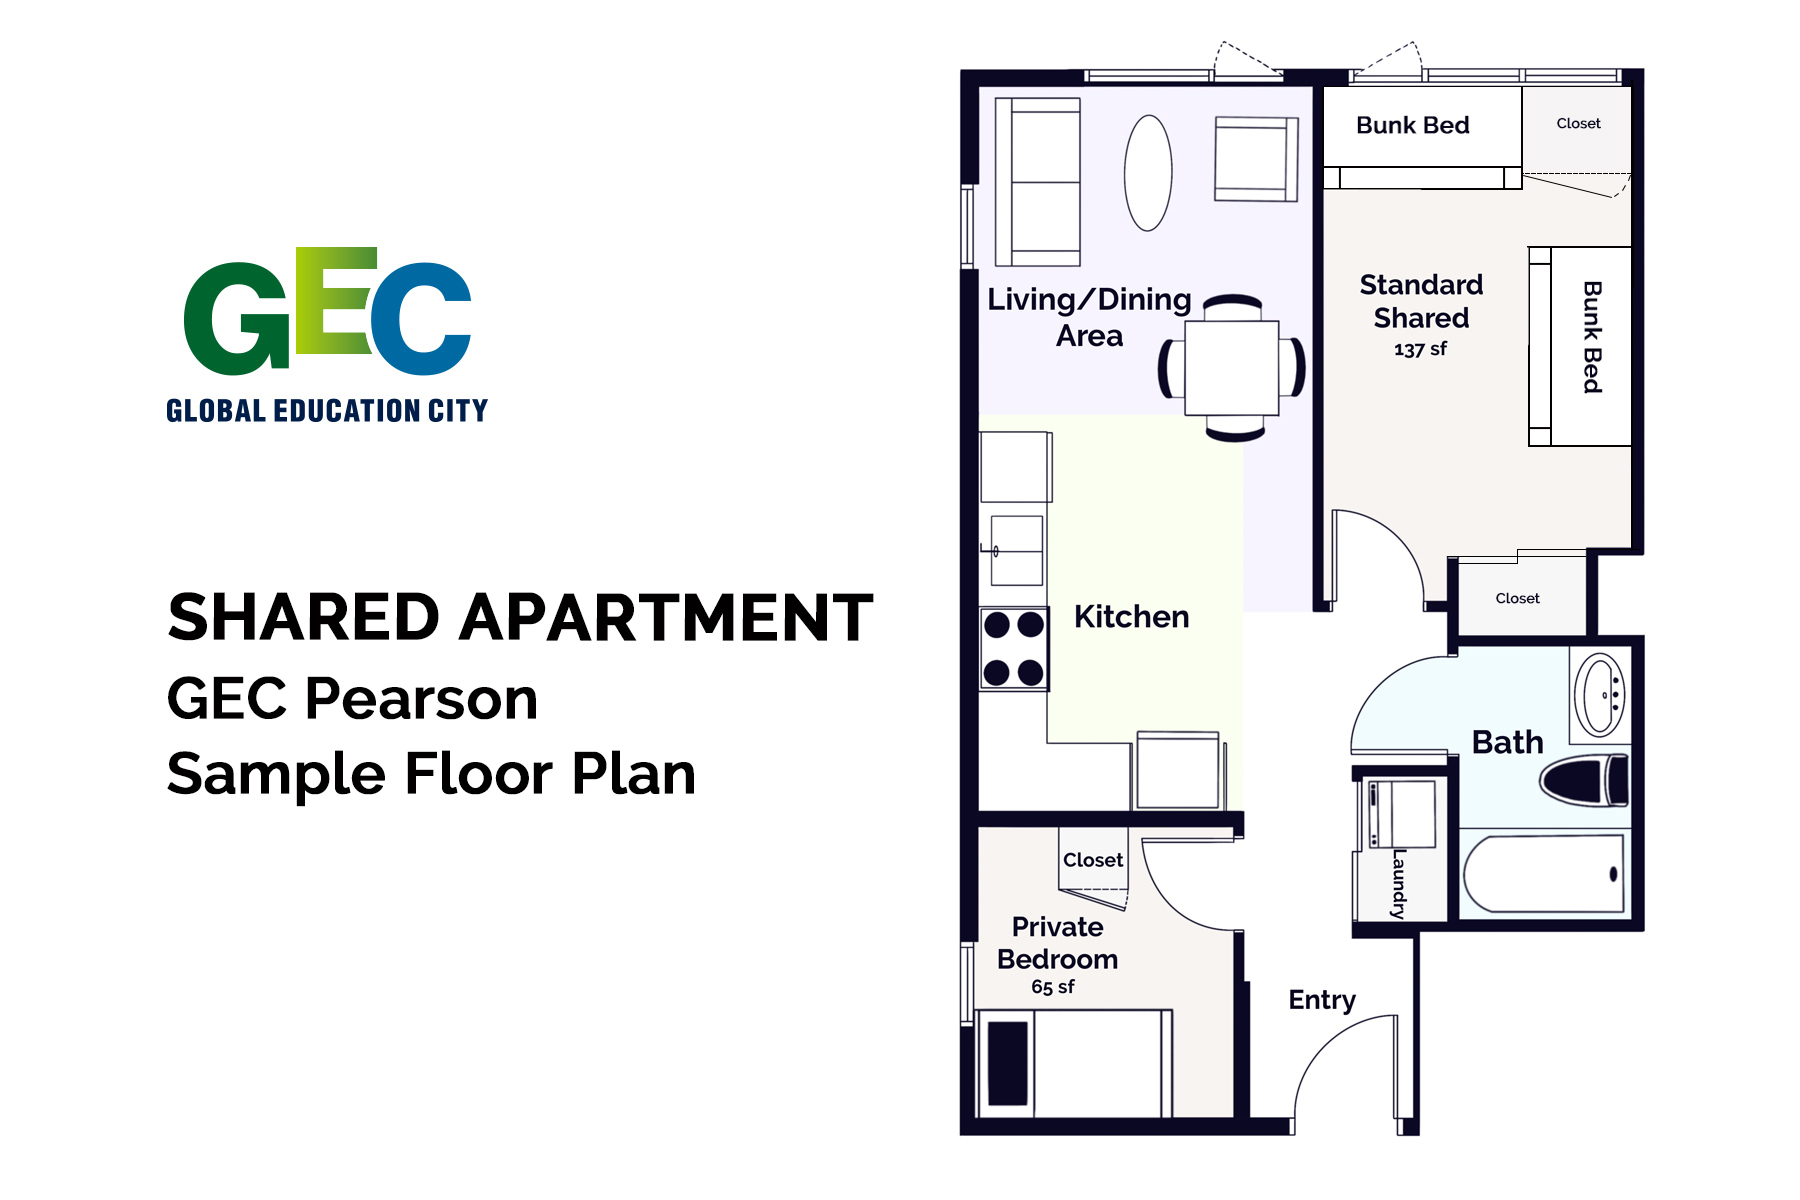 Standard Shared Bedroom floor plan